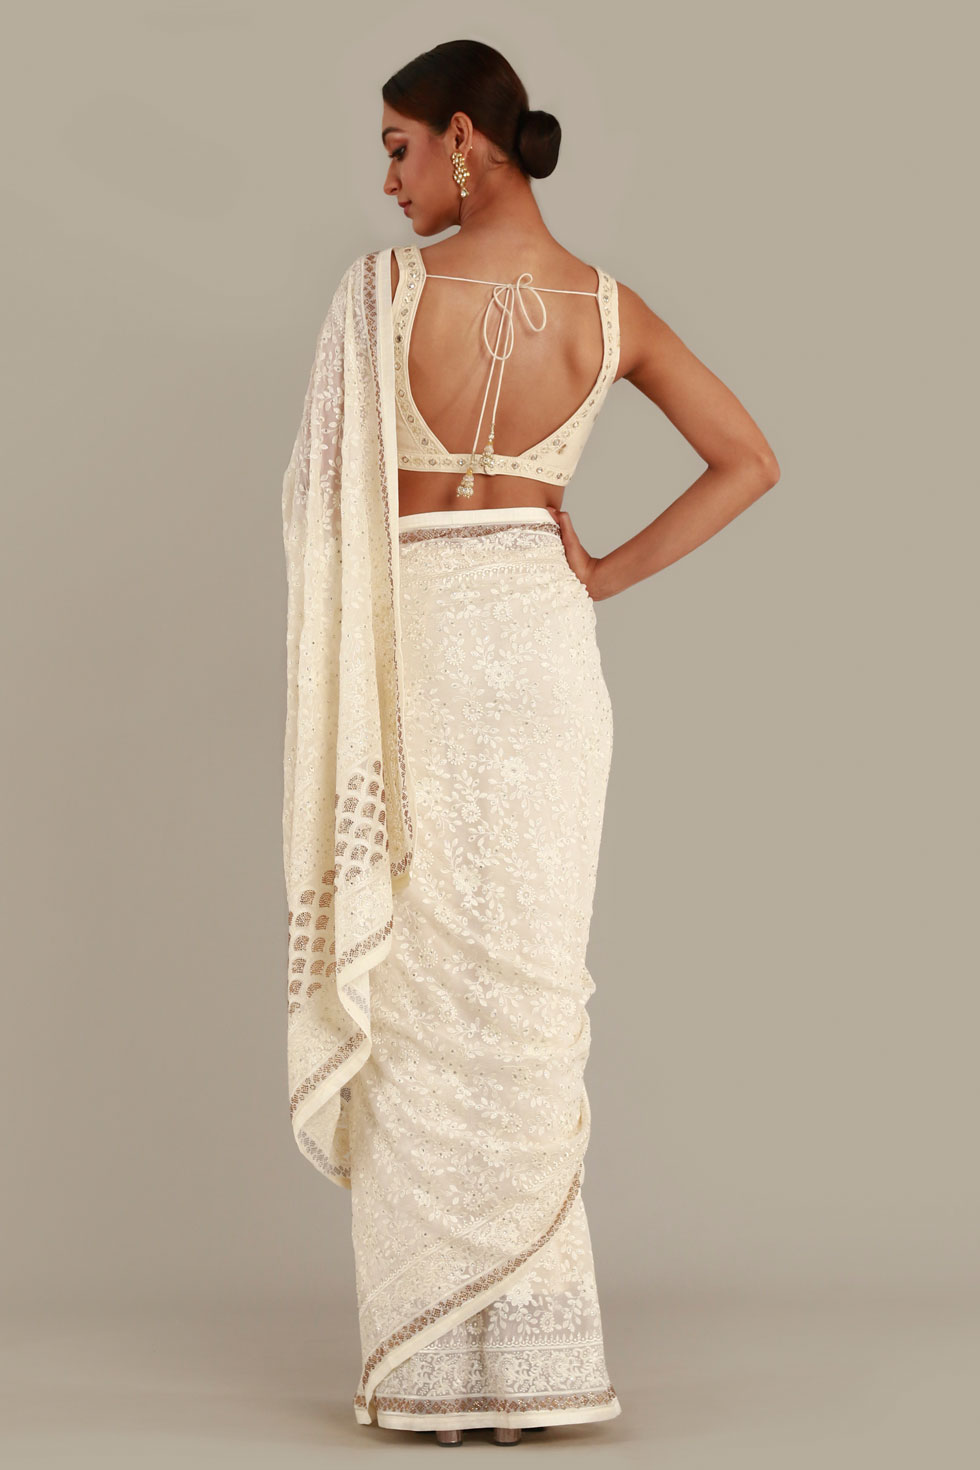 Pearly white classic saree with thread work and dull gold border and matching choli